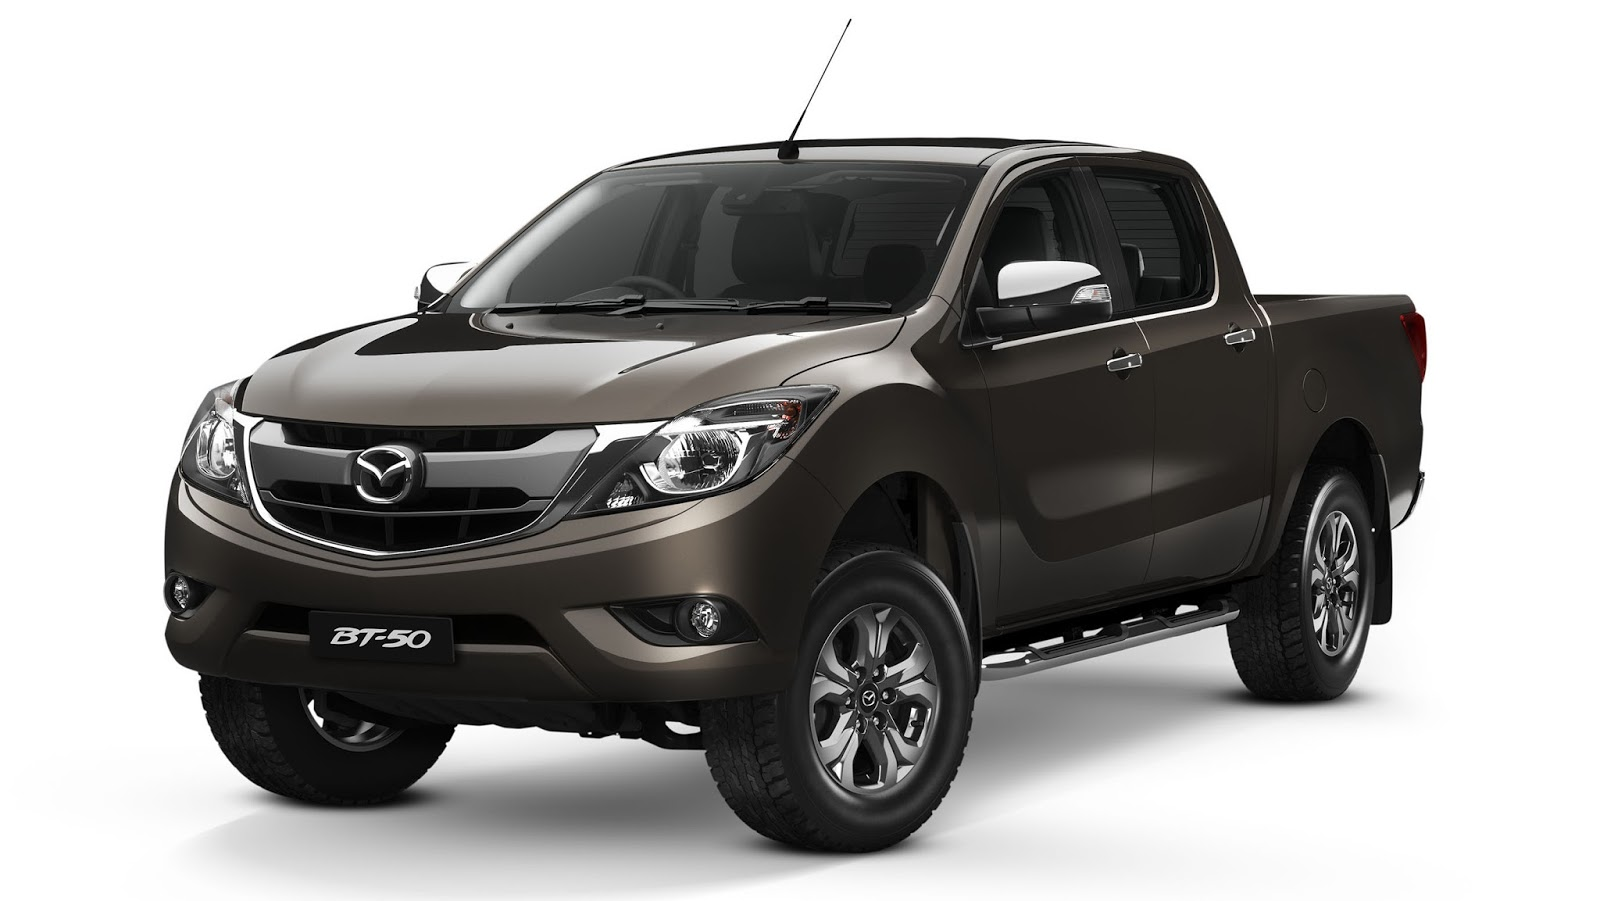 lanzamiento mazda new bt 50 autoblog uruguay. Black Bedroom Furniture Sets. Home Design Ideas